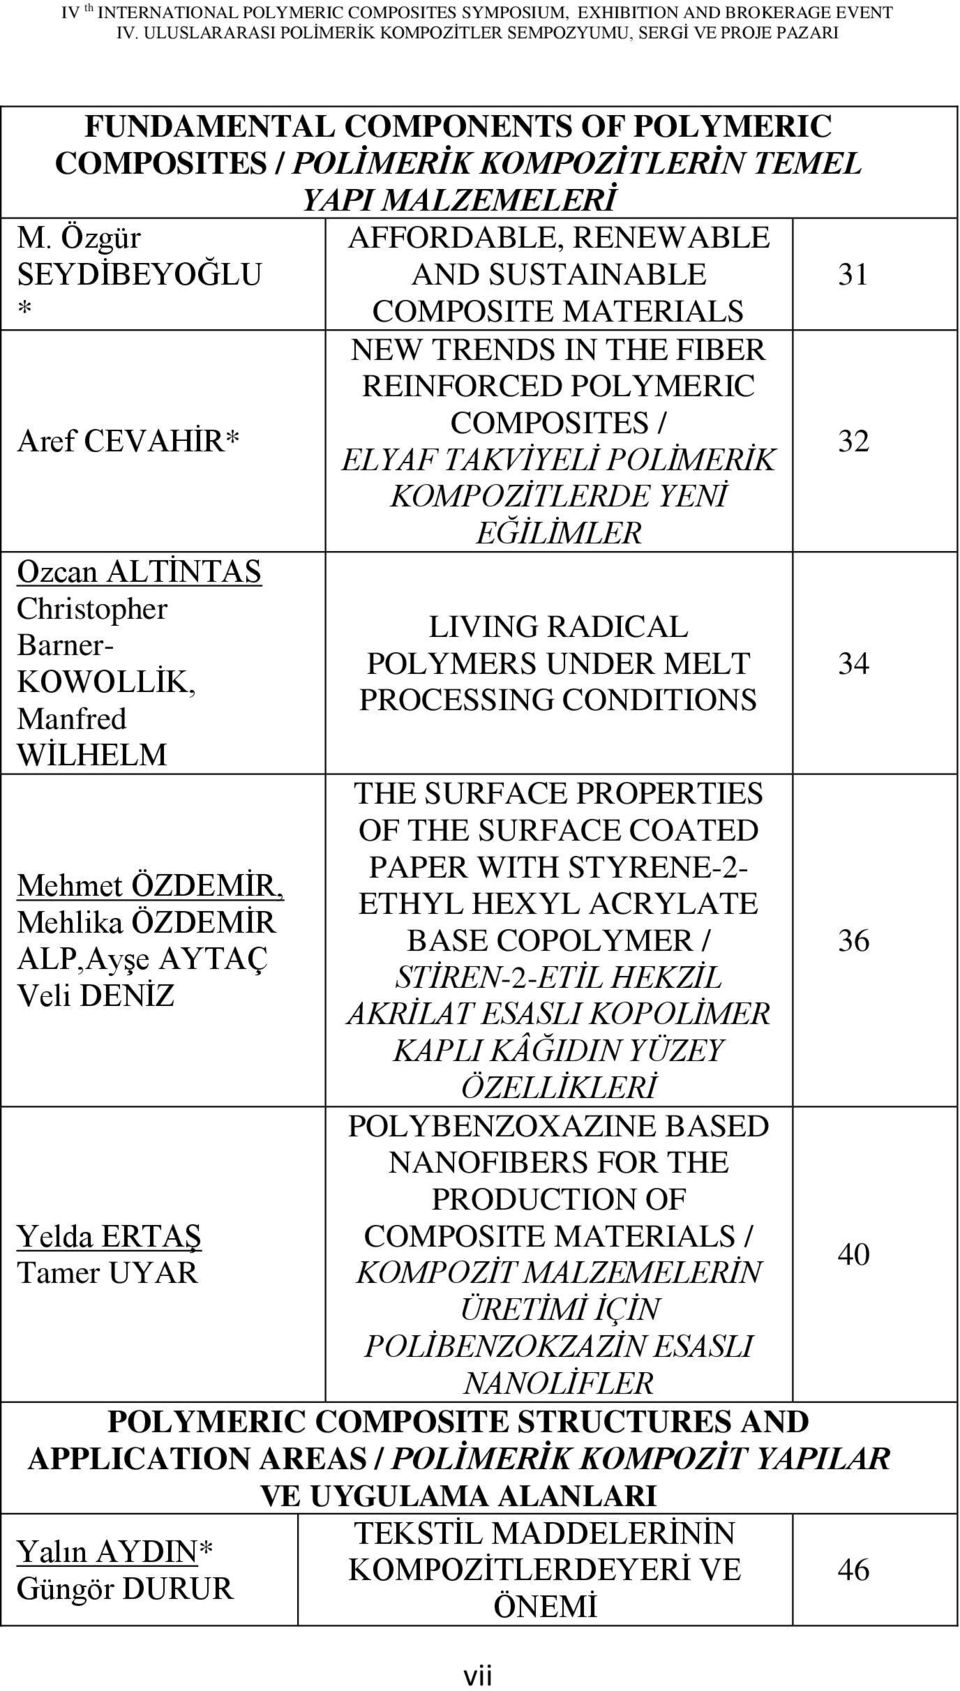 AND SUSTAINABLE COMPOSITE MATERIALS NEW TRENDS IN THE FIBER REINFORCED POLYMERIC COMPOSITES / ELYAF TAKVĠYELĠ POLĠMERĠK KOMPOZĠTLERDE YENĠ EĞĠLĠMLER LIVING RADICAL POLYMERS UNDER MELT PROCESSING